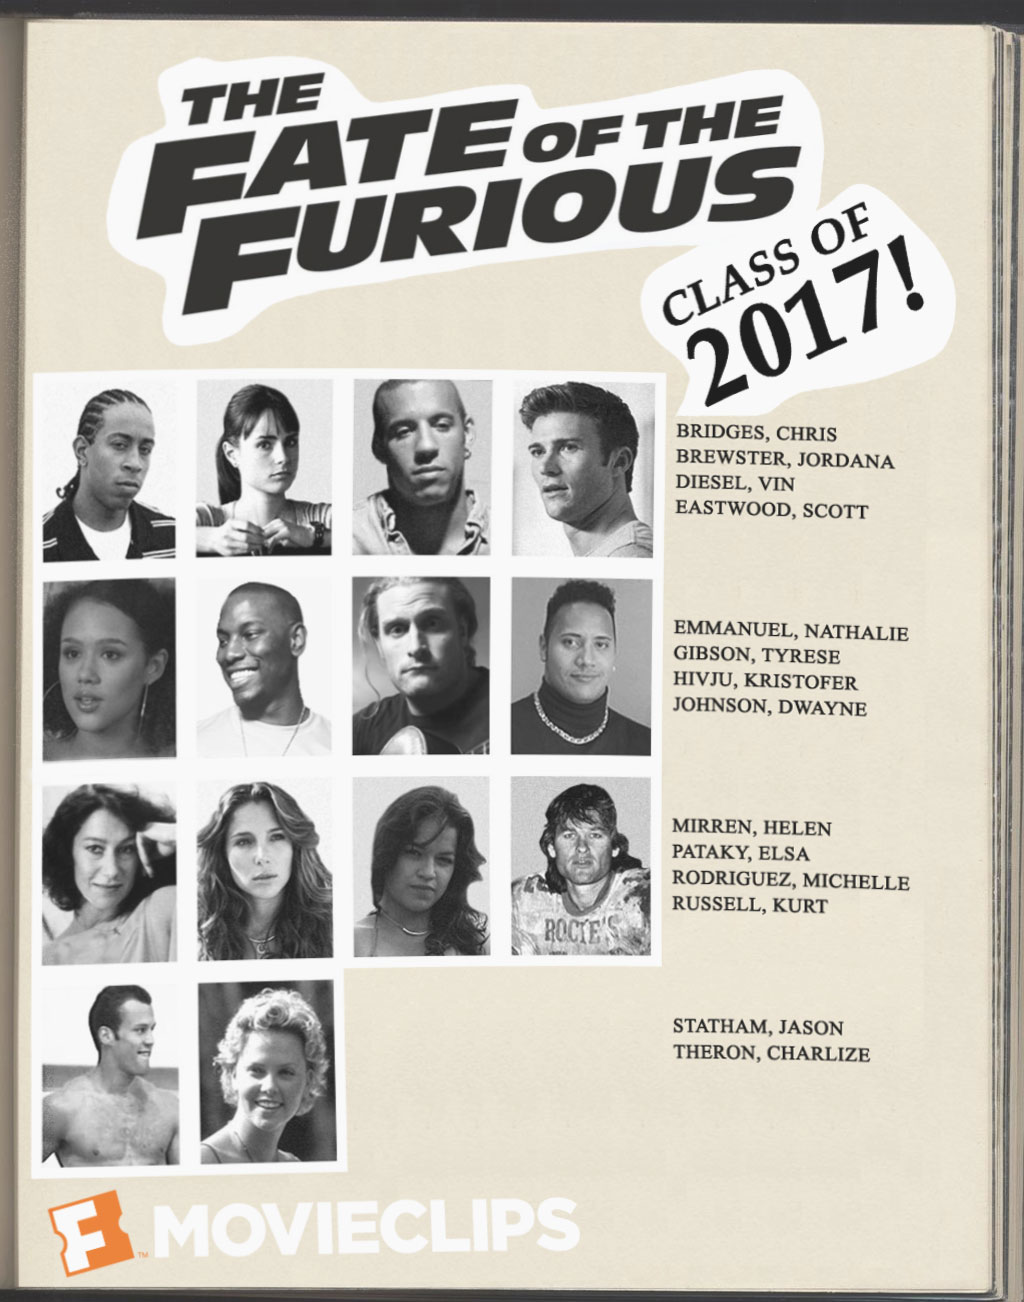 'Fate of the Furious' Yearbook: What if the Cast Went to High School Together?